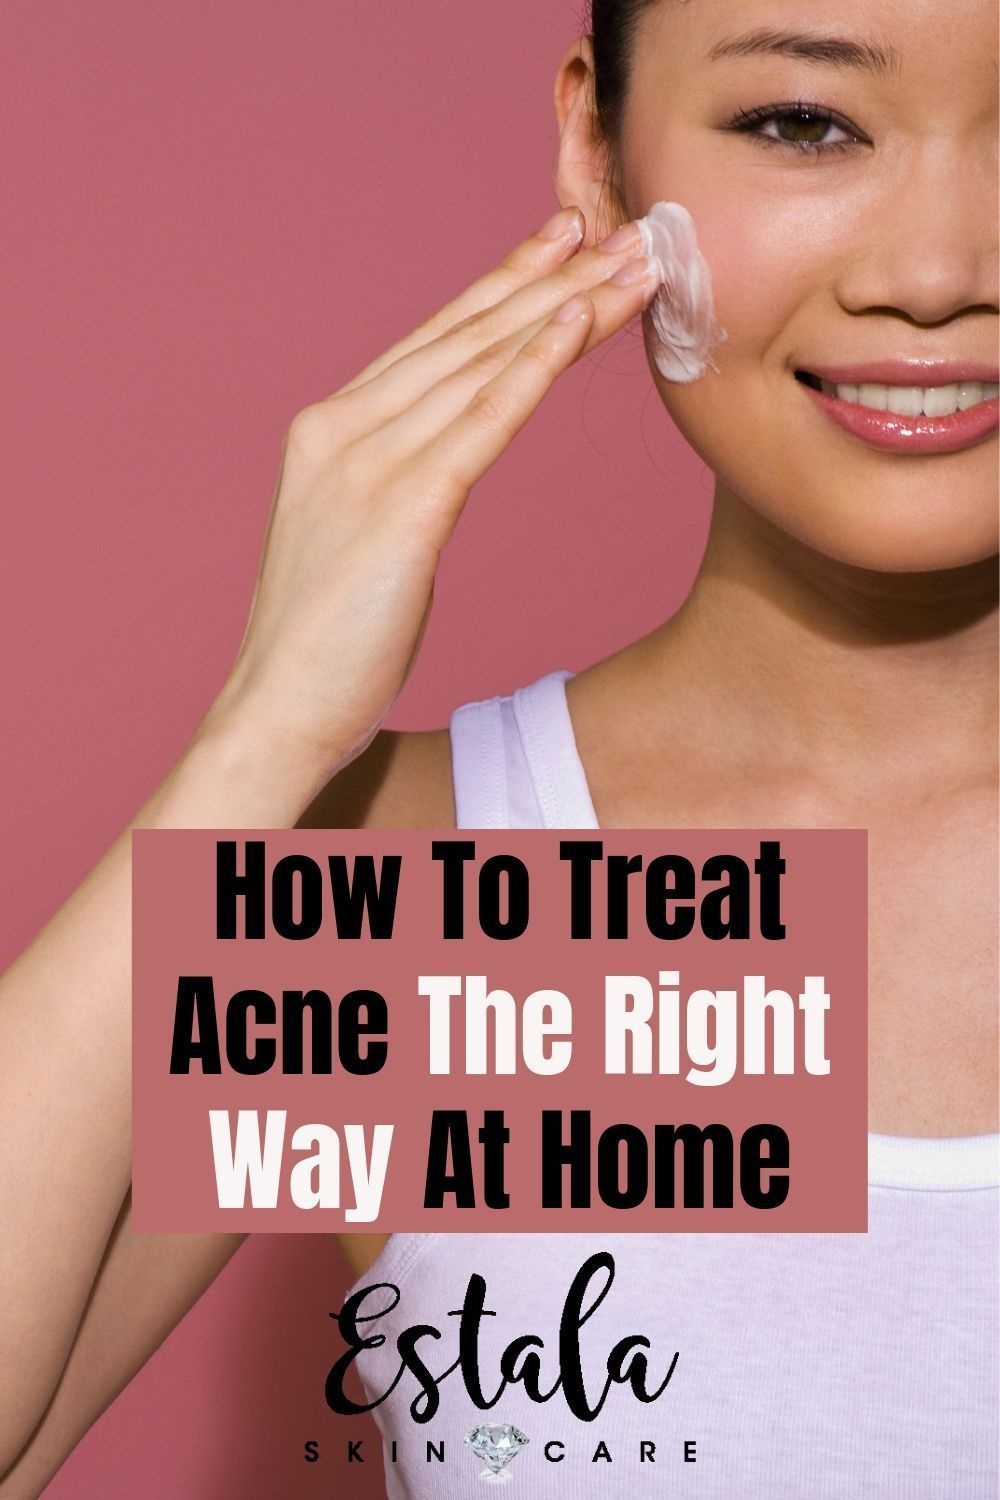 How To Treat Acne The Right Way At Home Learn More About How To Take Care Of Skin Acne And Whether Or Not You Shou In 2020 How To Treat Acne